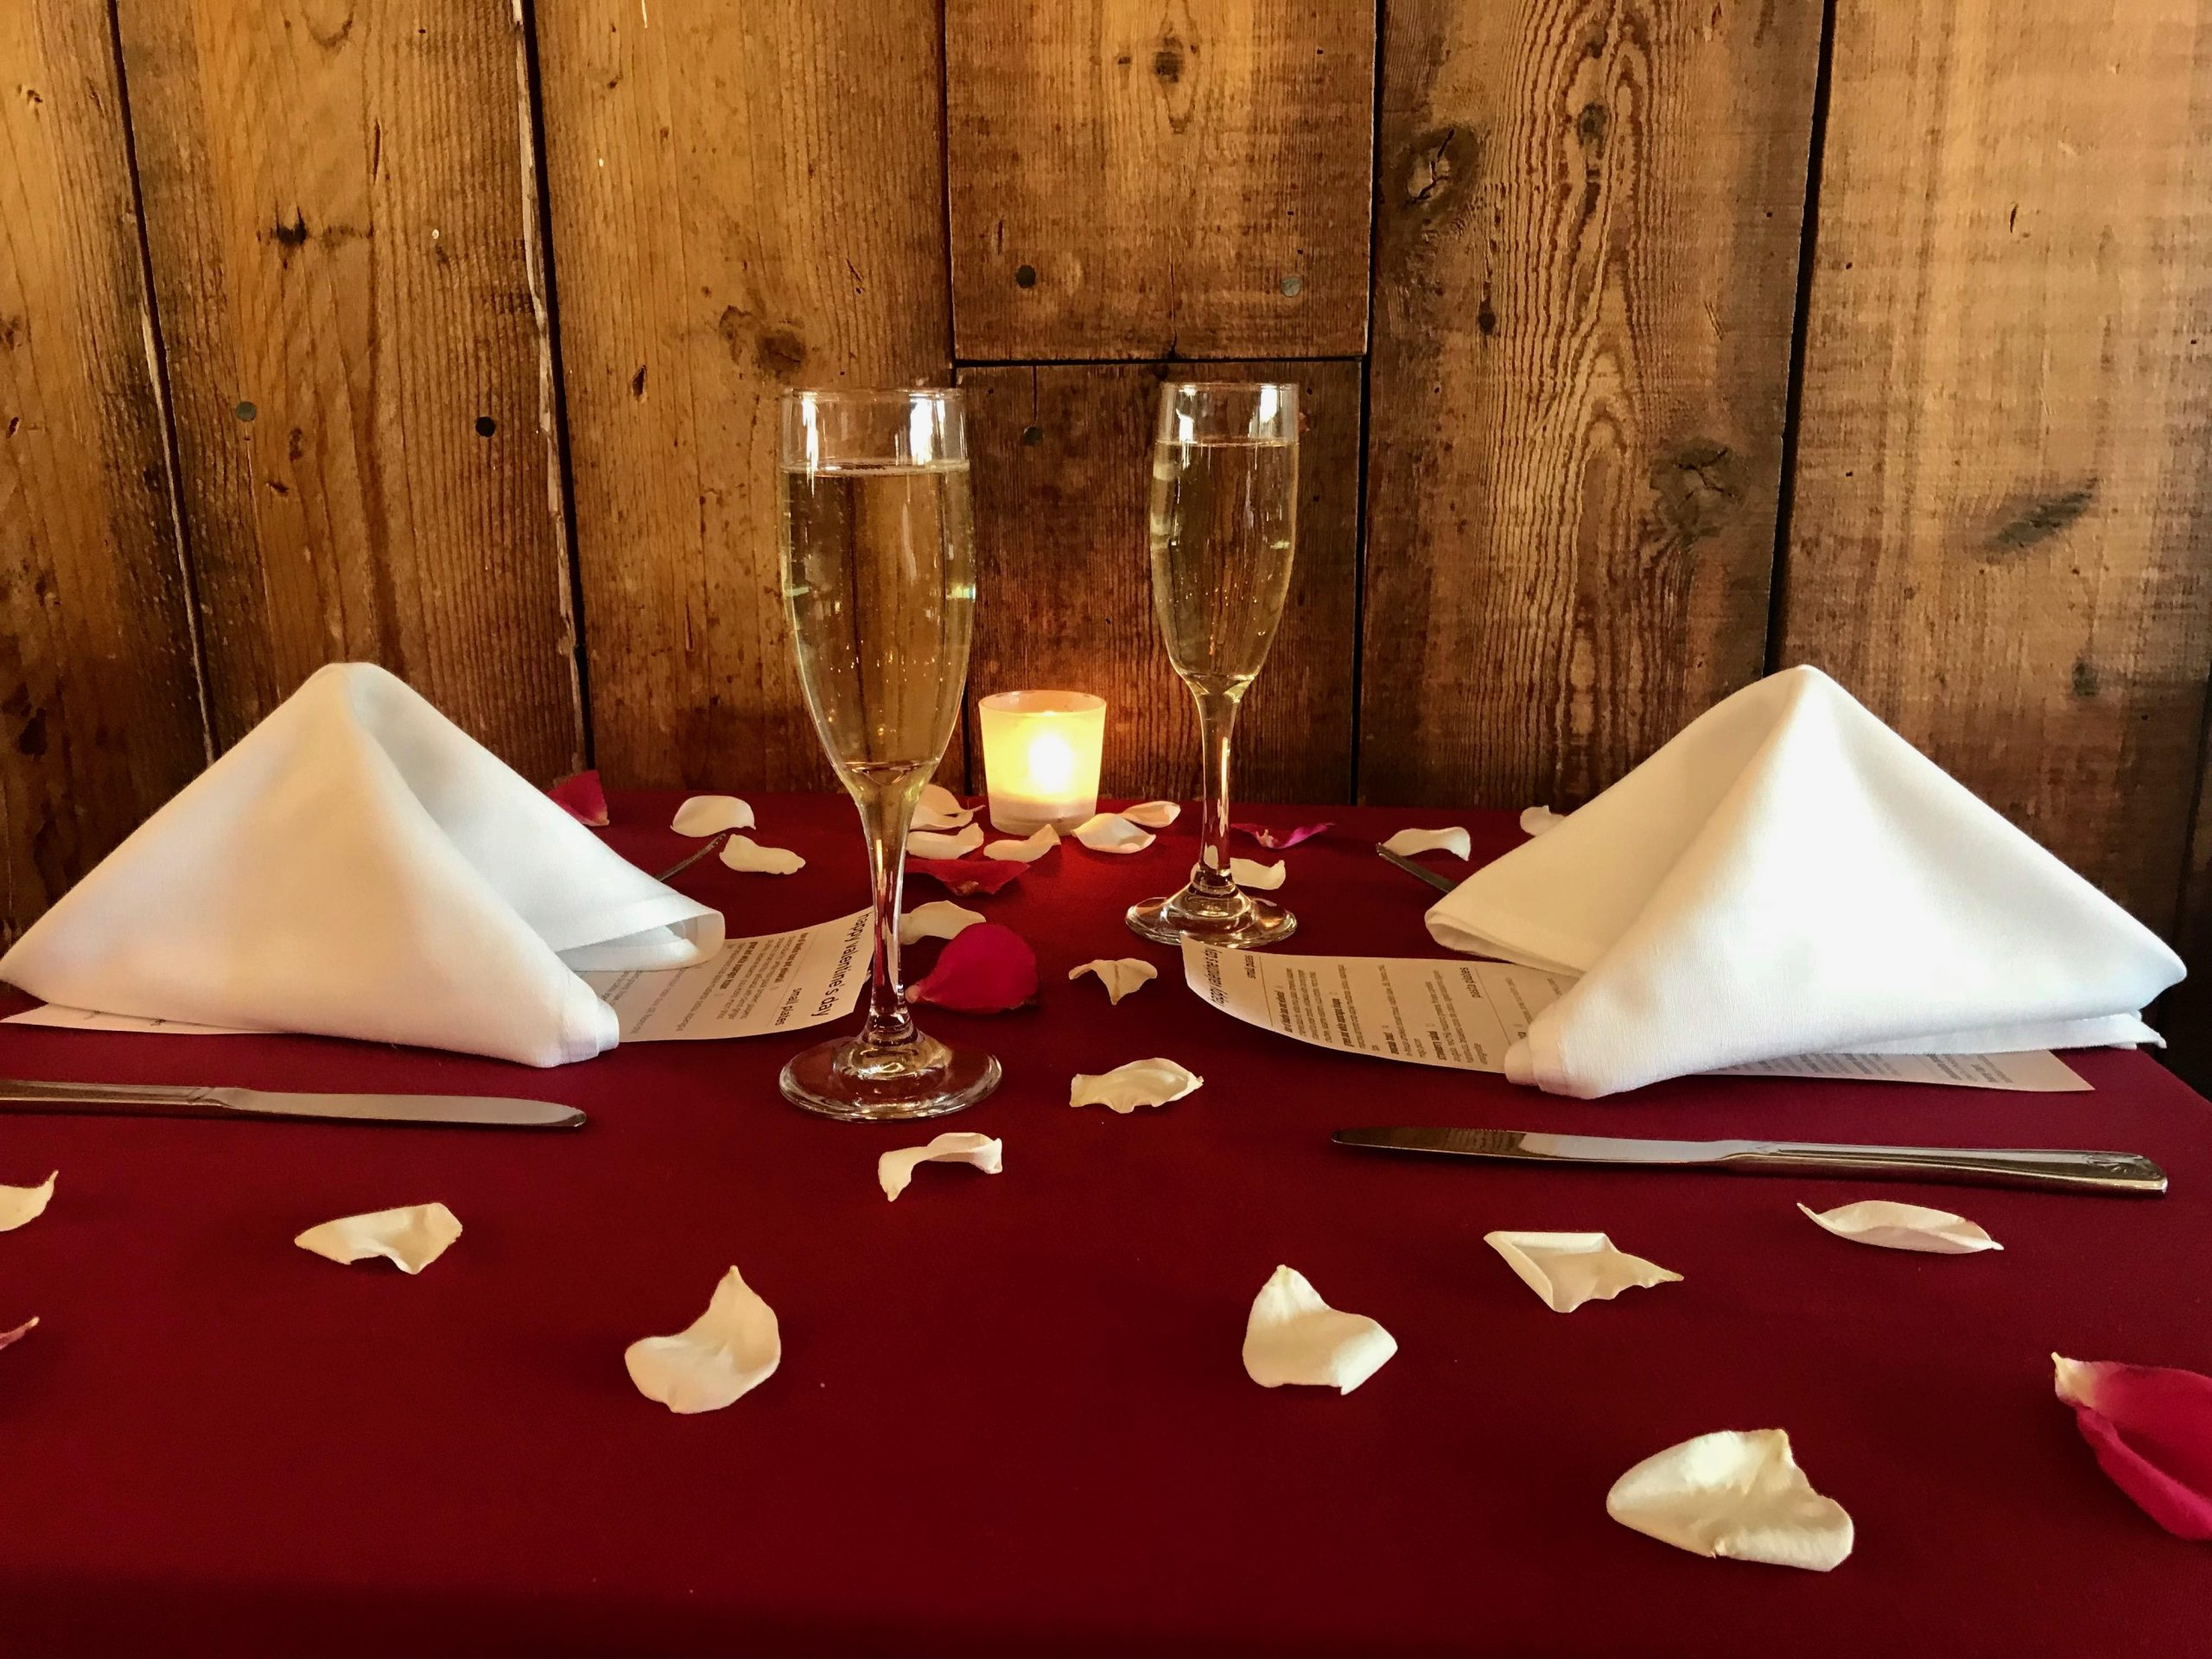 valentines table with rose petals, champagne glasses, and white linen napkins folded